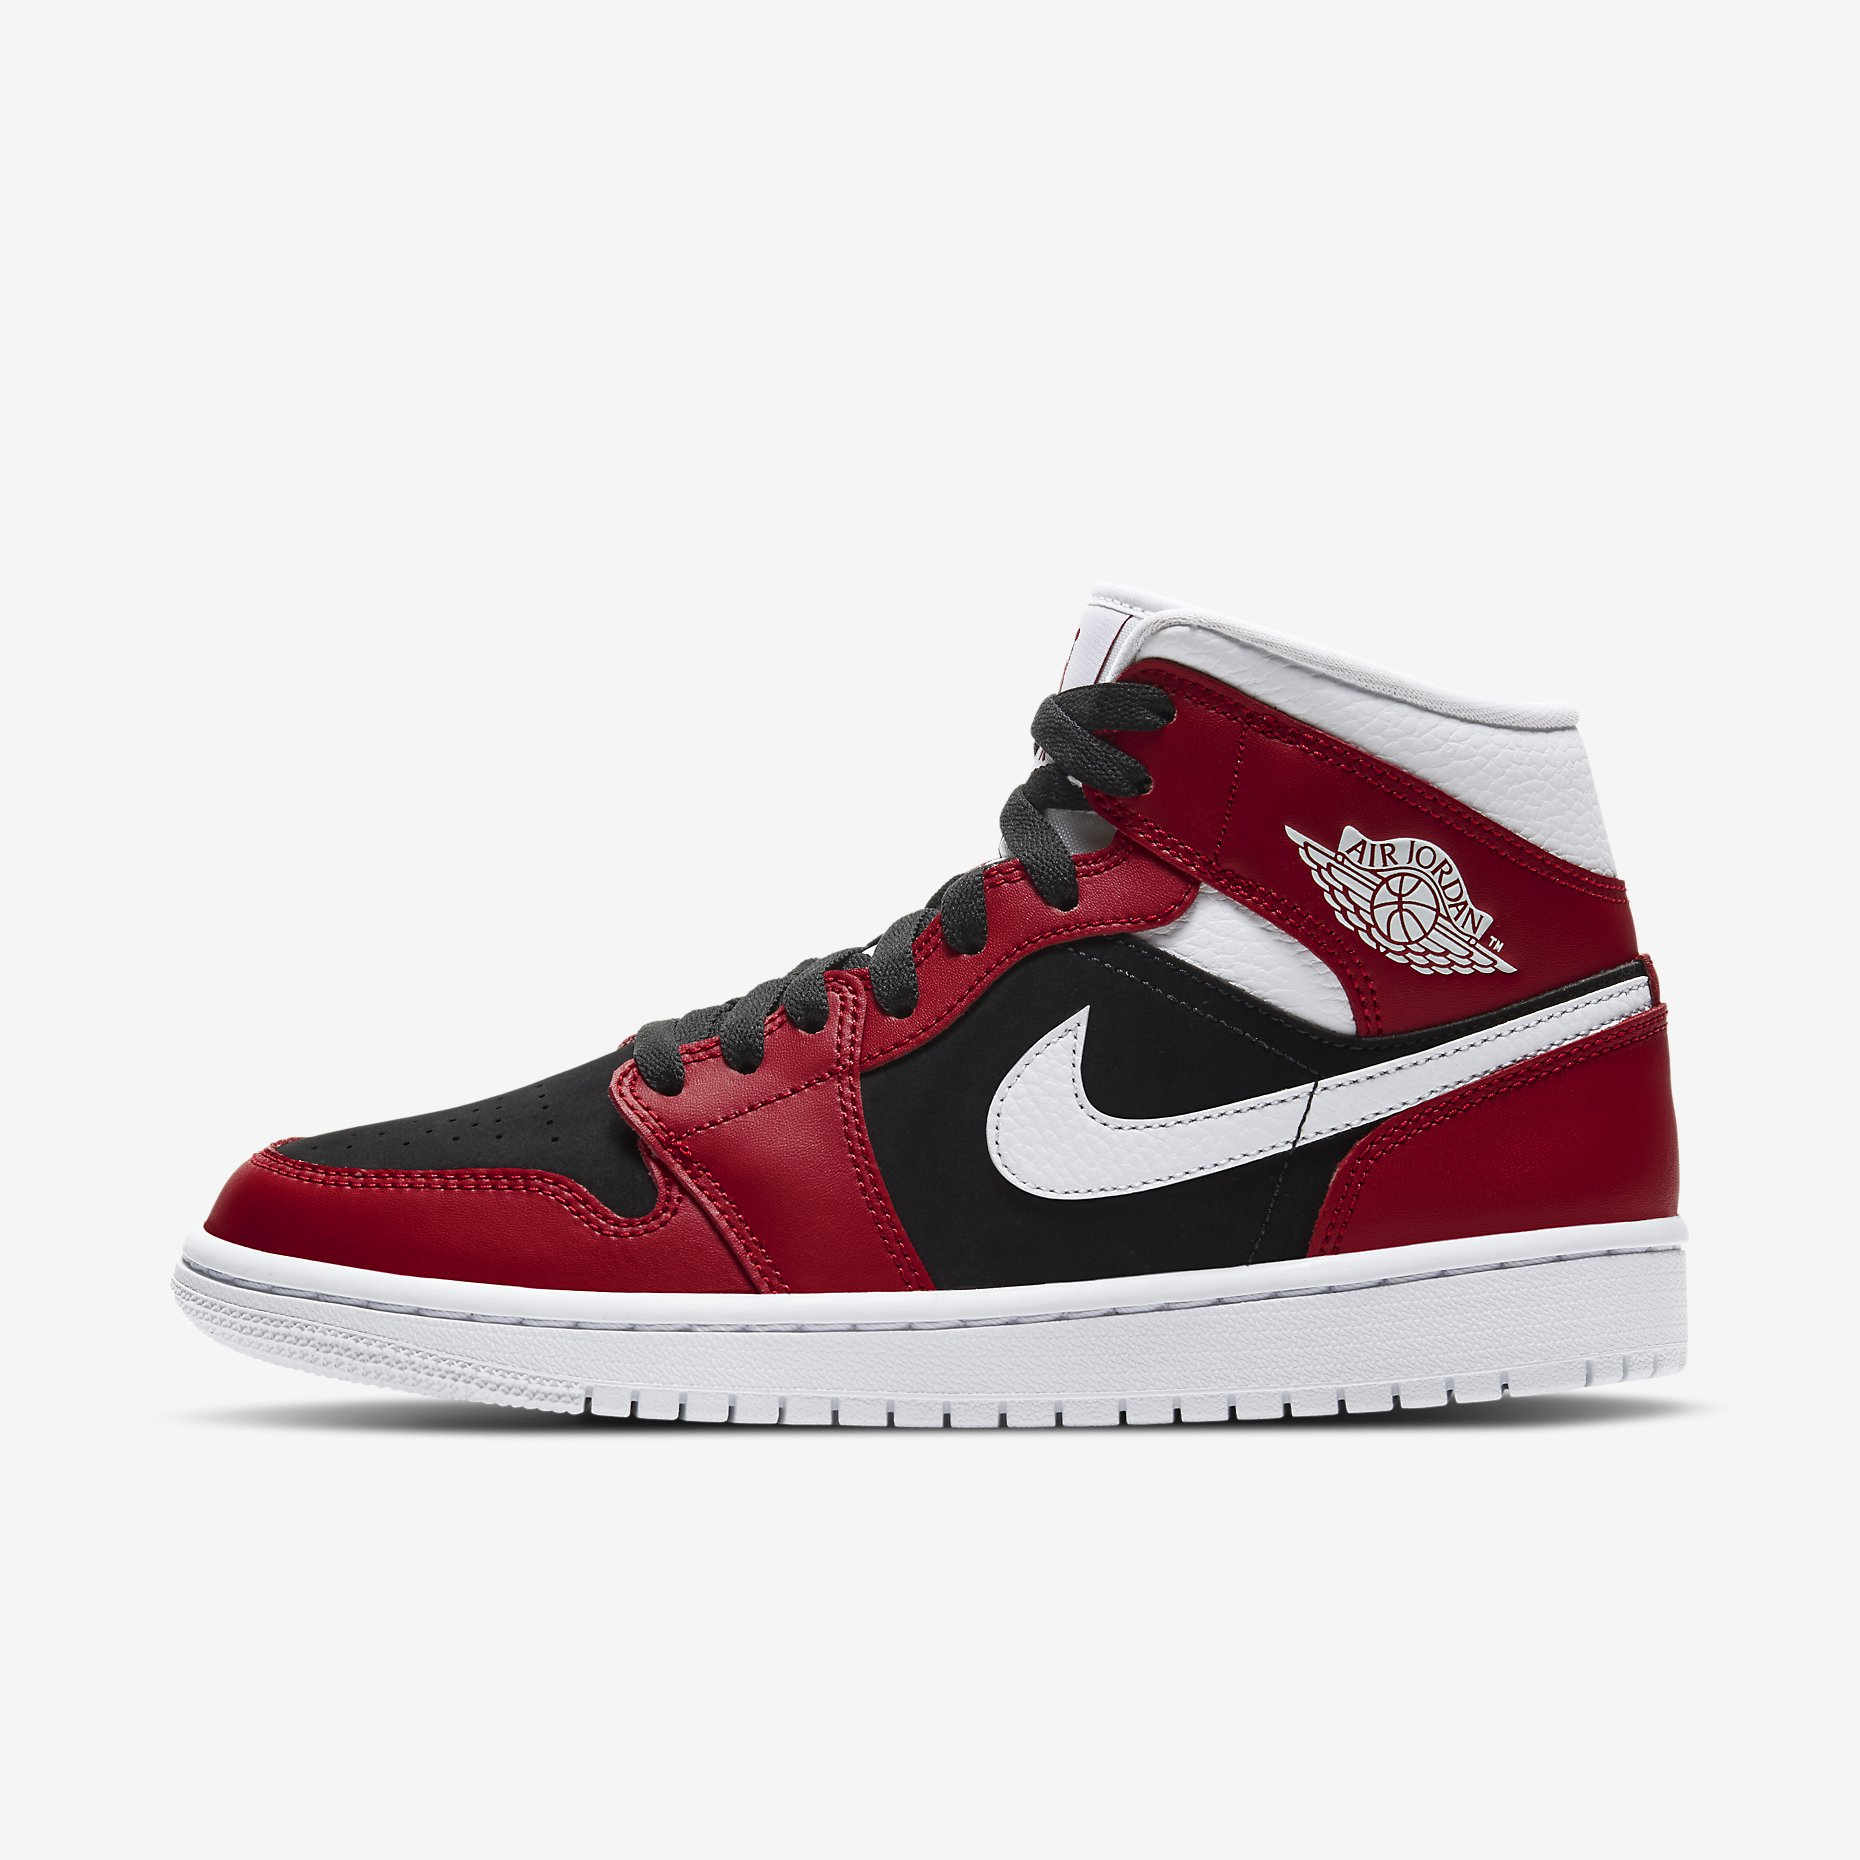 Wmns Air Jordan 1 Mid 'Gym Red/Black/White'}